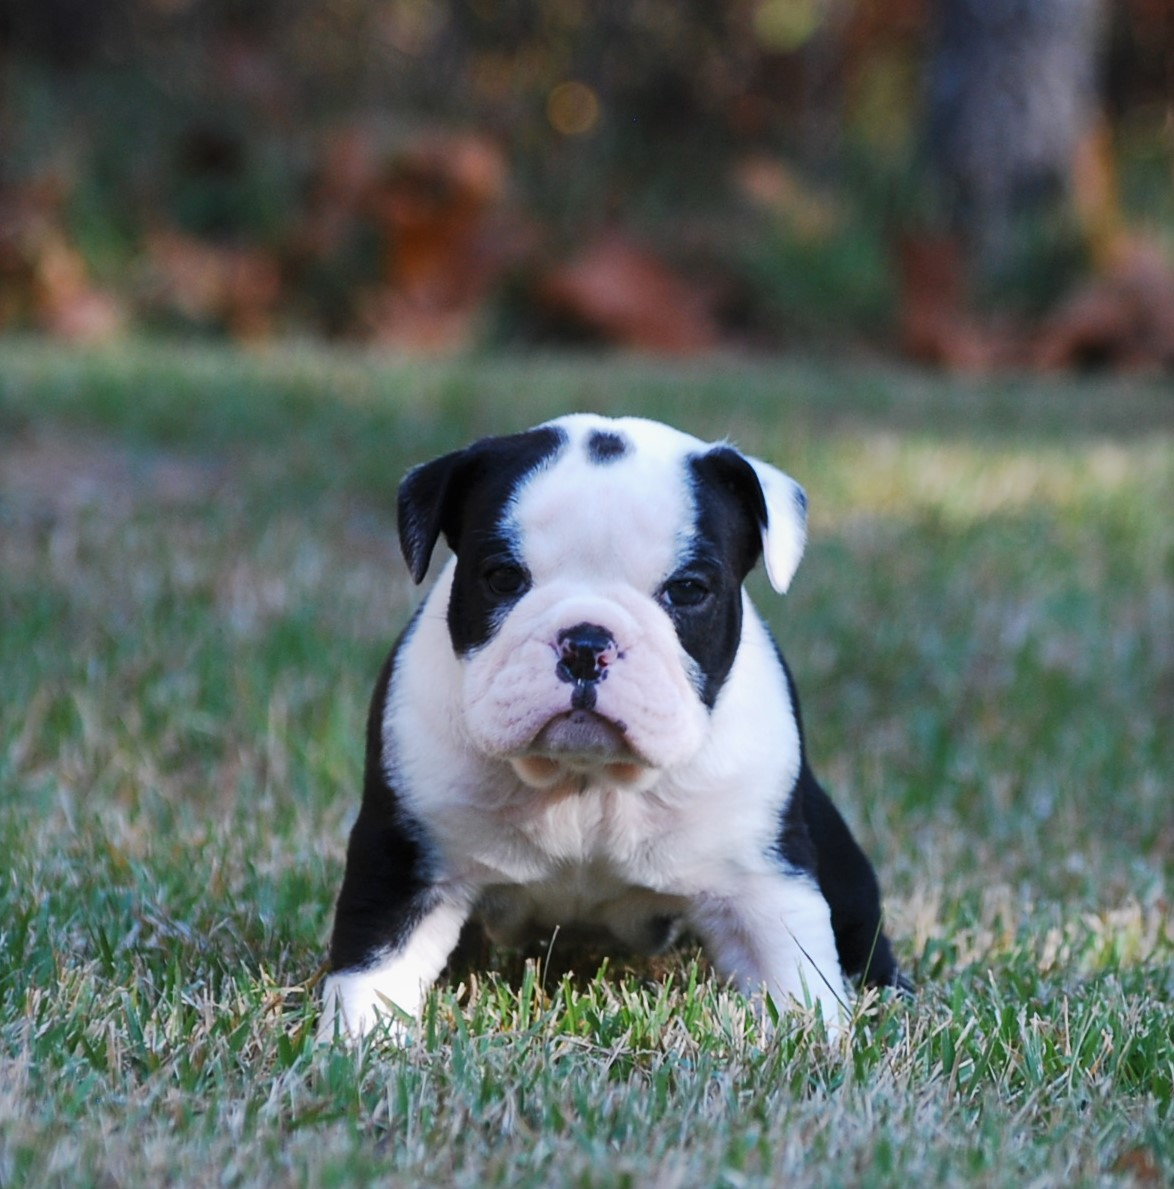 Delilah Olde English Bulldogge Puppy For Sale | Photo 5